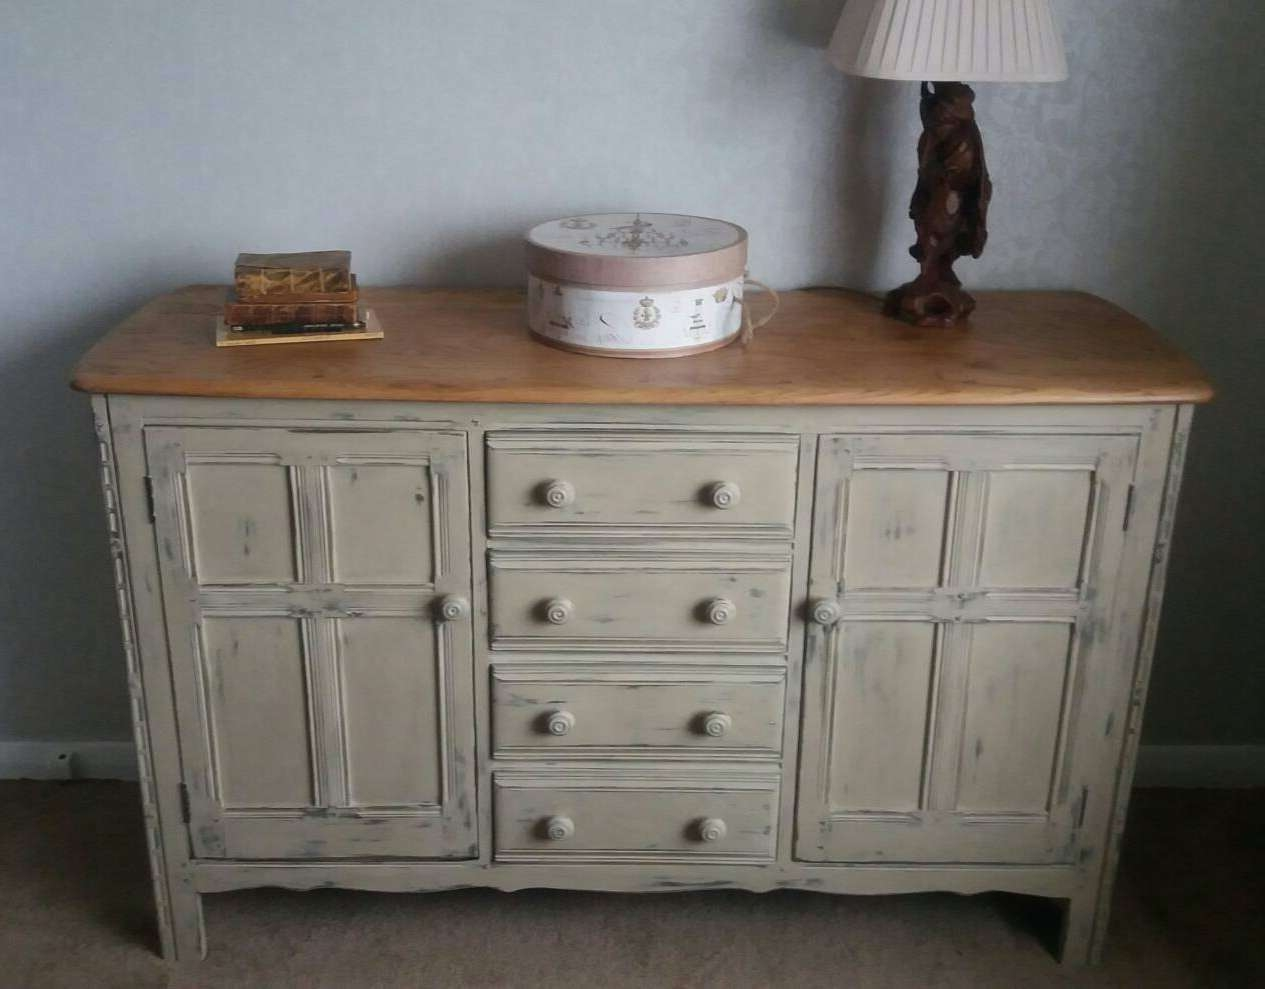 Ercol Sideboard Beautifully Upcycled In Shabby Chic Style Pertaining To Shabby Chic Sideboards (View 4 of 20)